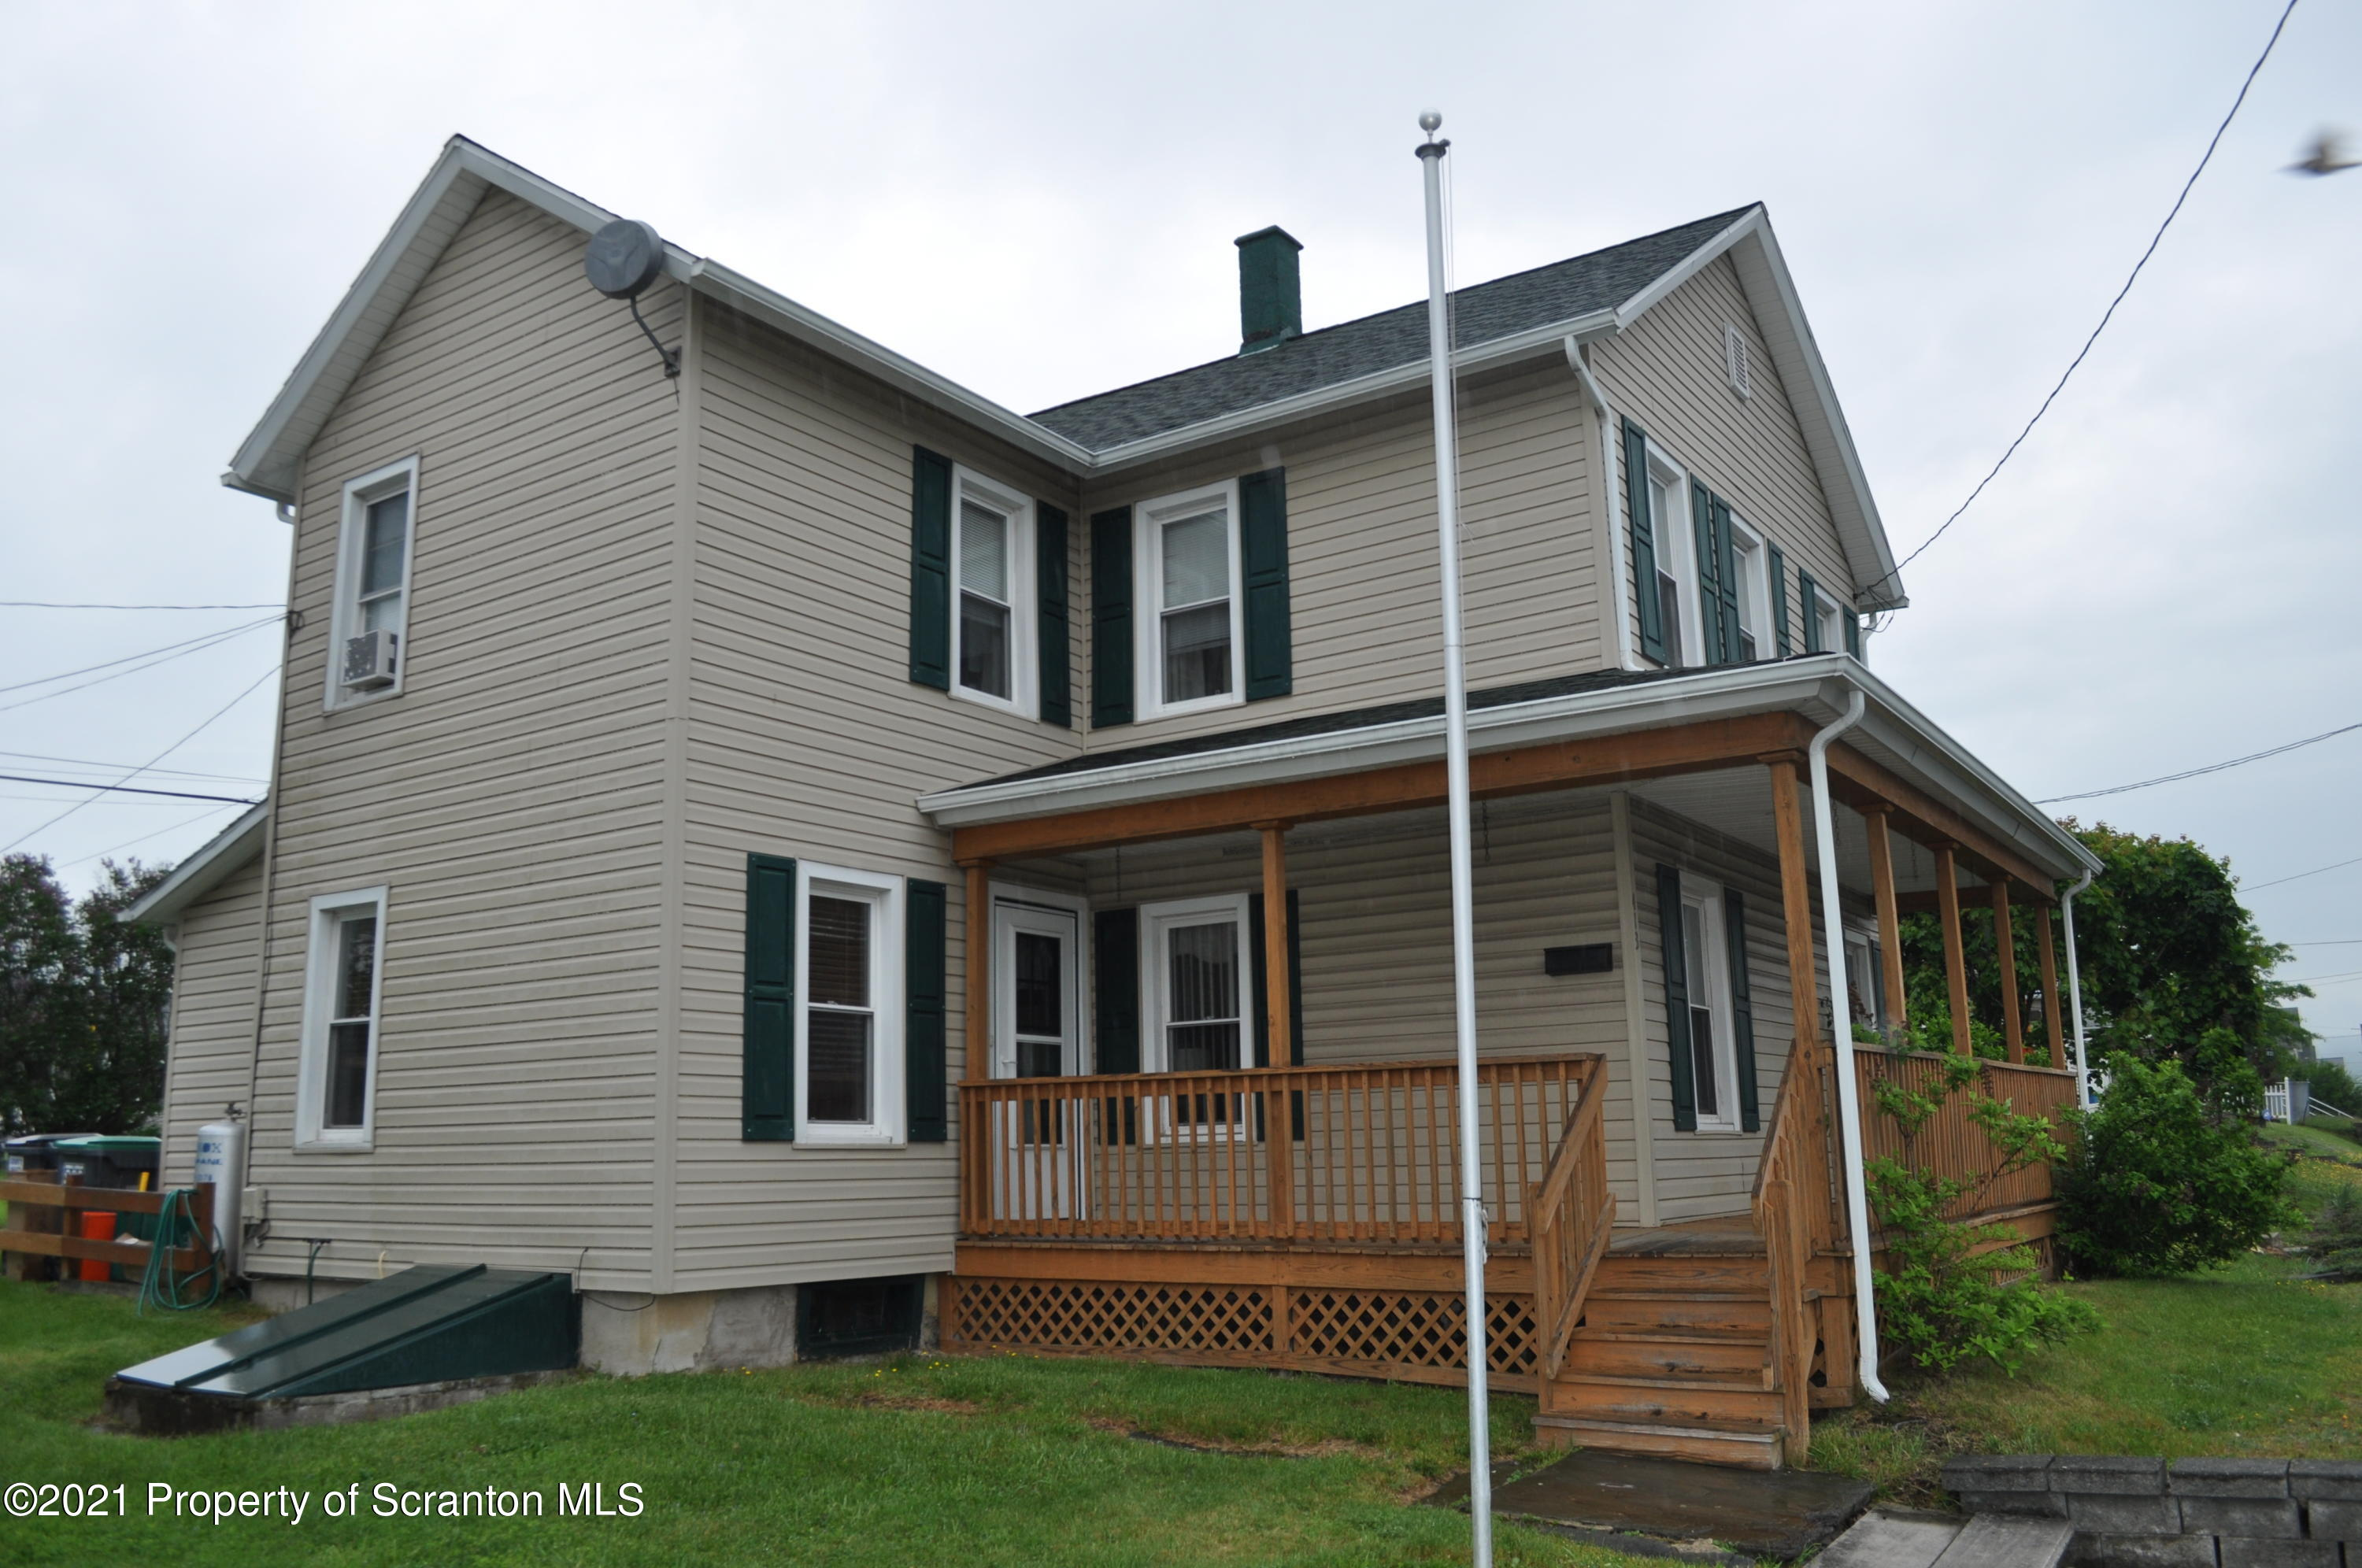 413 Main St, Vandling, Pennsylvania 18421, 3 Bedrooms Bedrooms, 6 Rooms Rooms,2 BathroomsBathrooms,Single Family,For Sale,413 Main St,21-2362